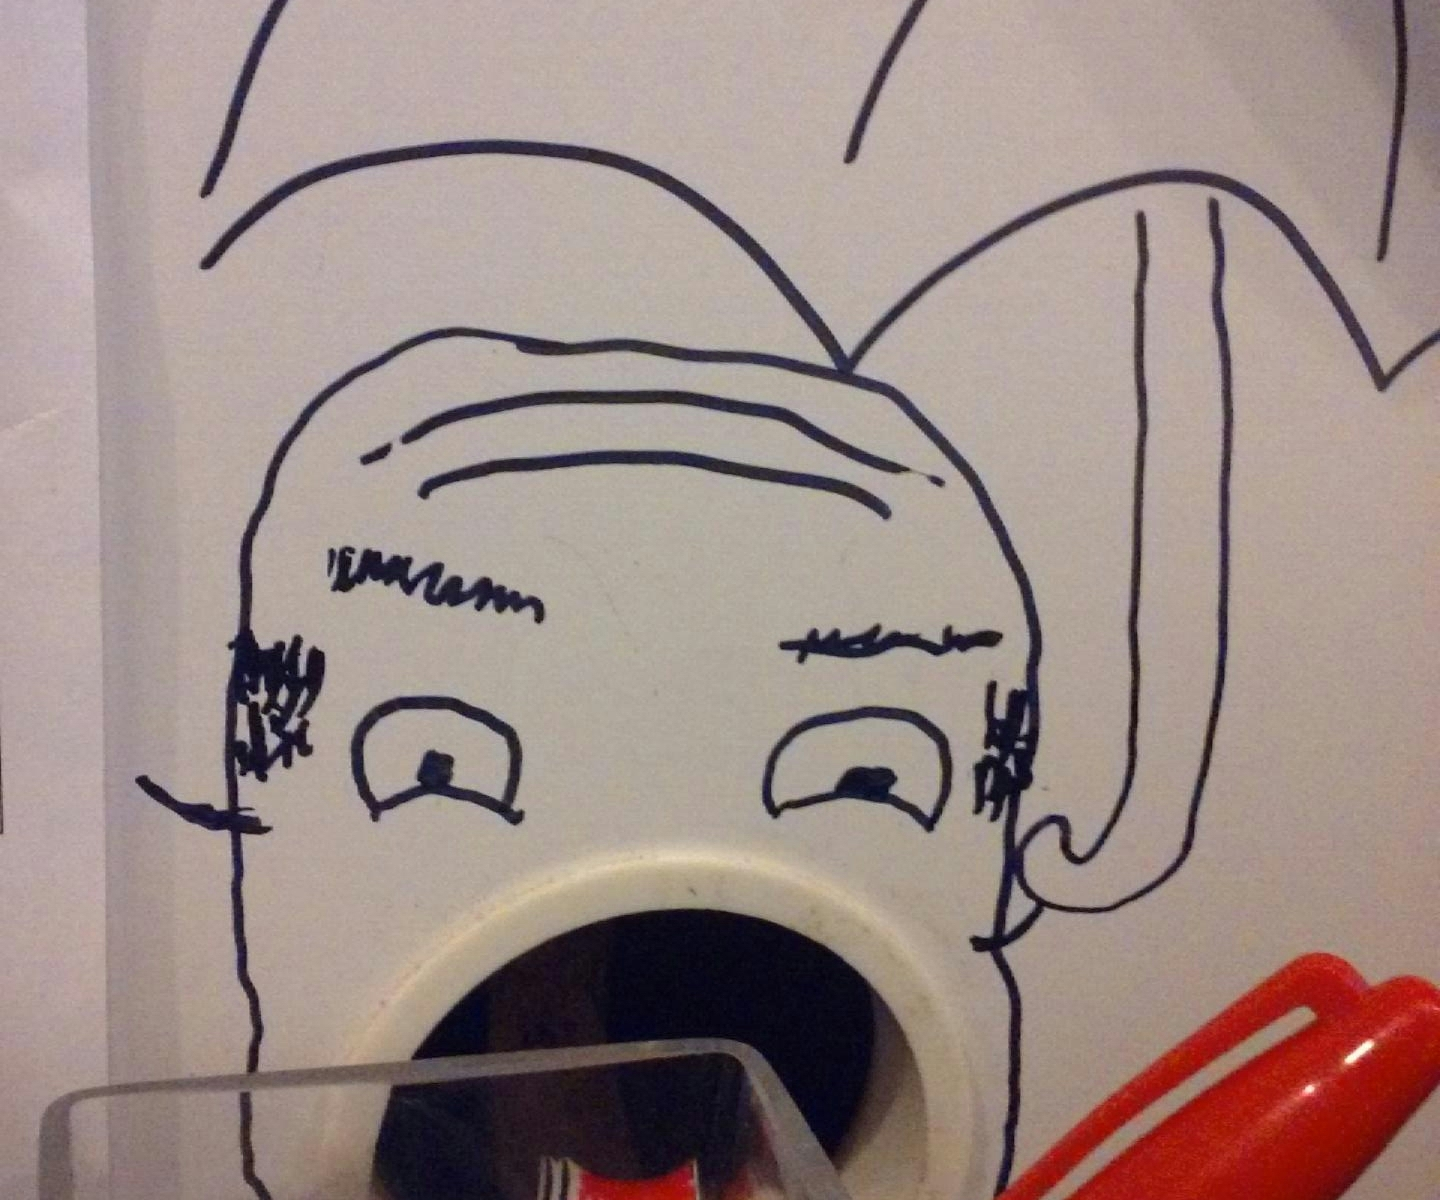 weird open mouth bald guy office wall graffiti art | The Lonely Tribalist